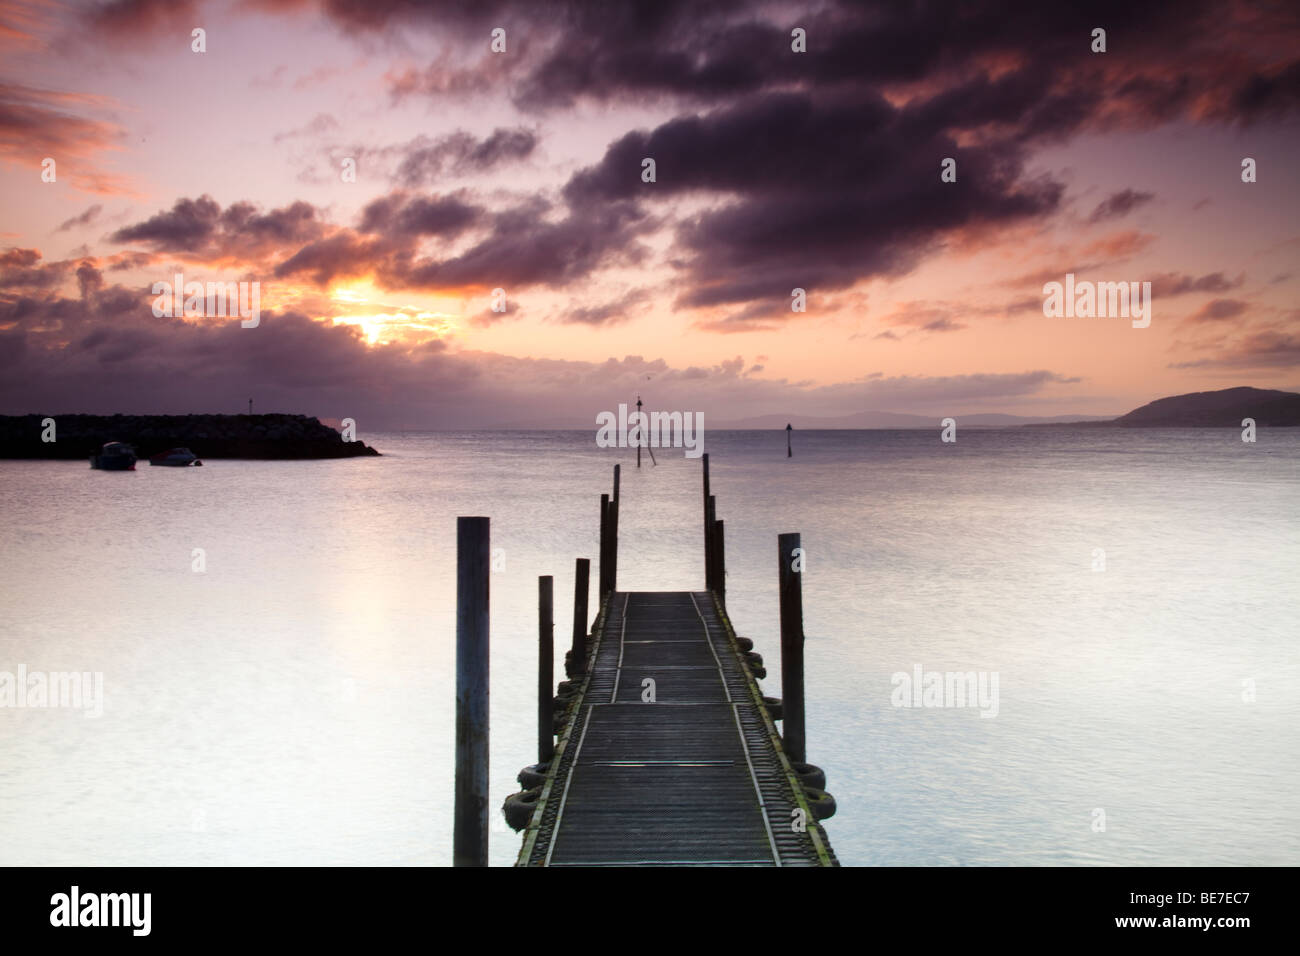 Looking out along the jetty walkway in Rhos on sea harbour at sunrise. Stock Photo